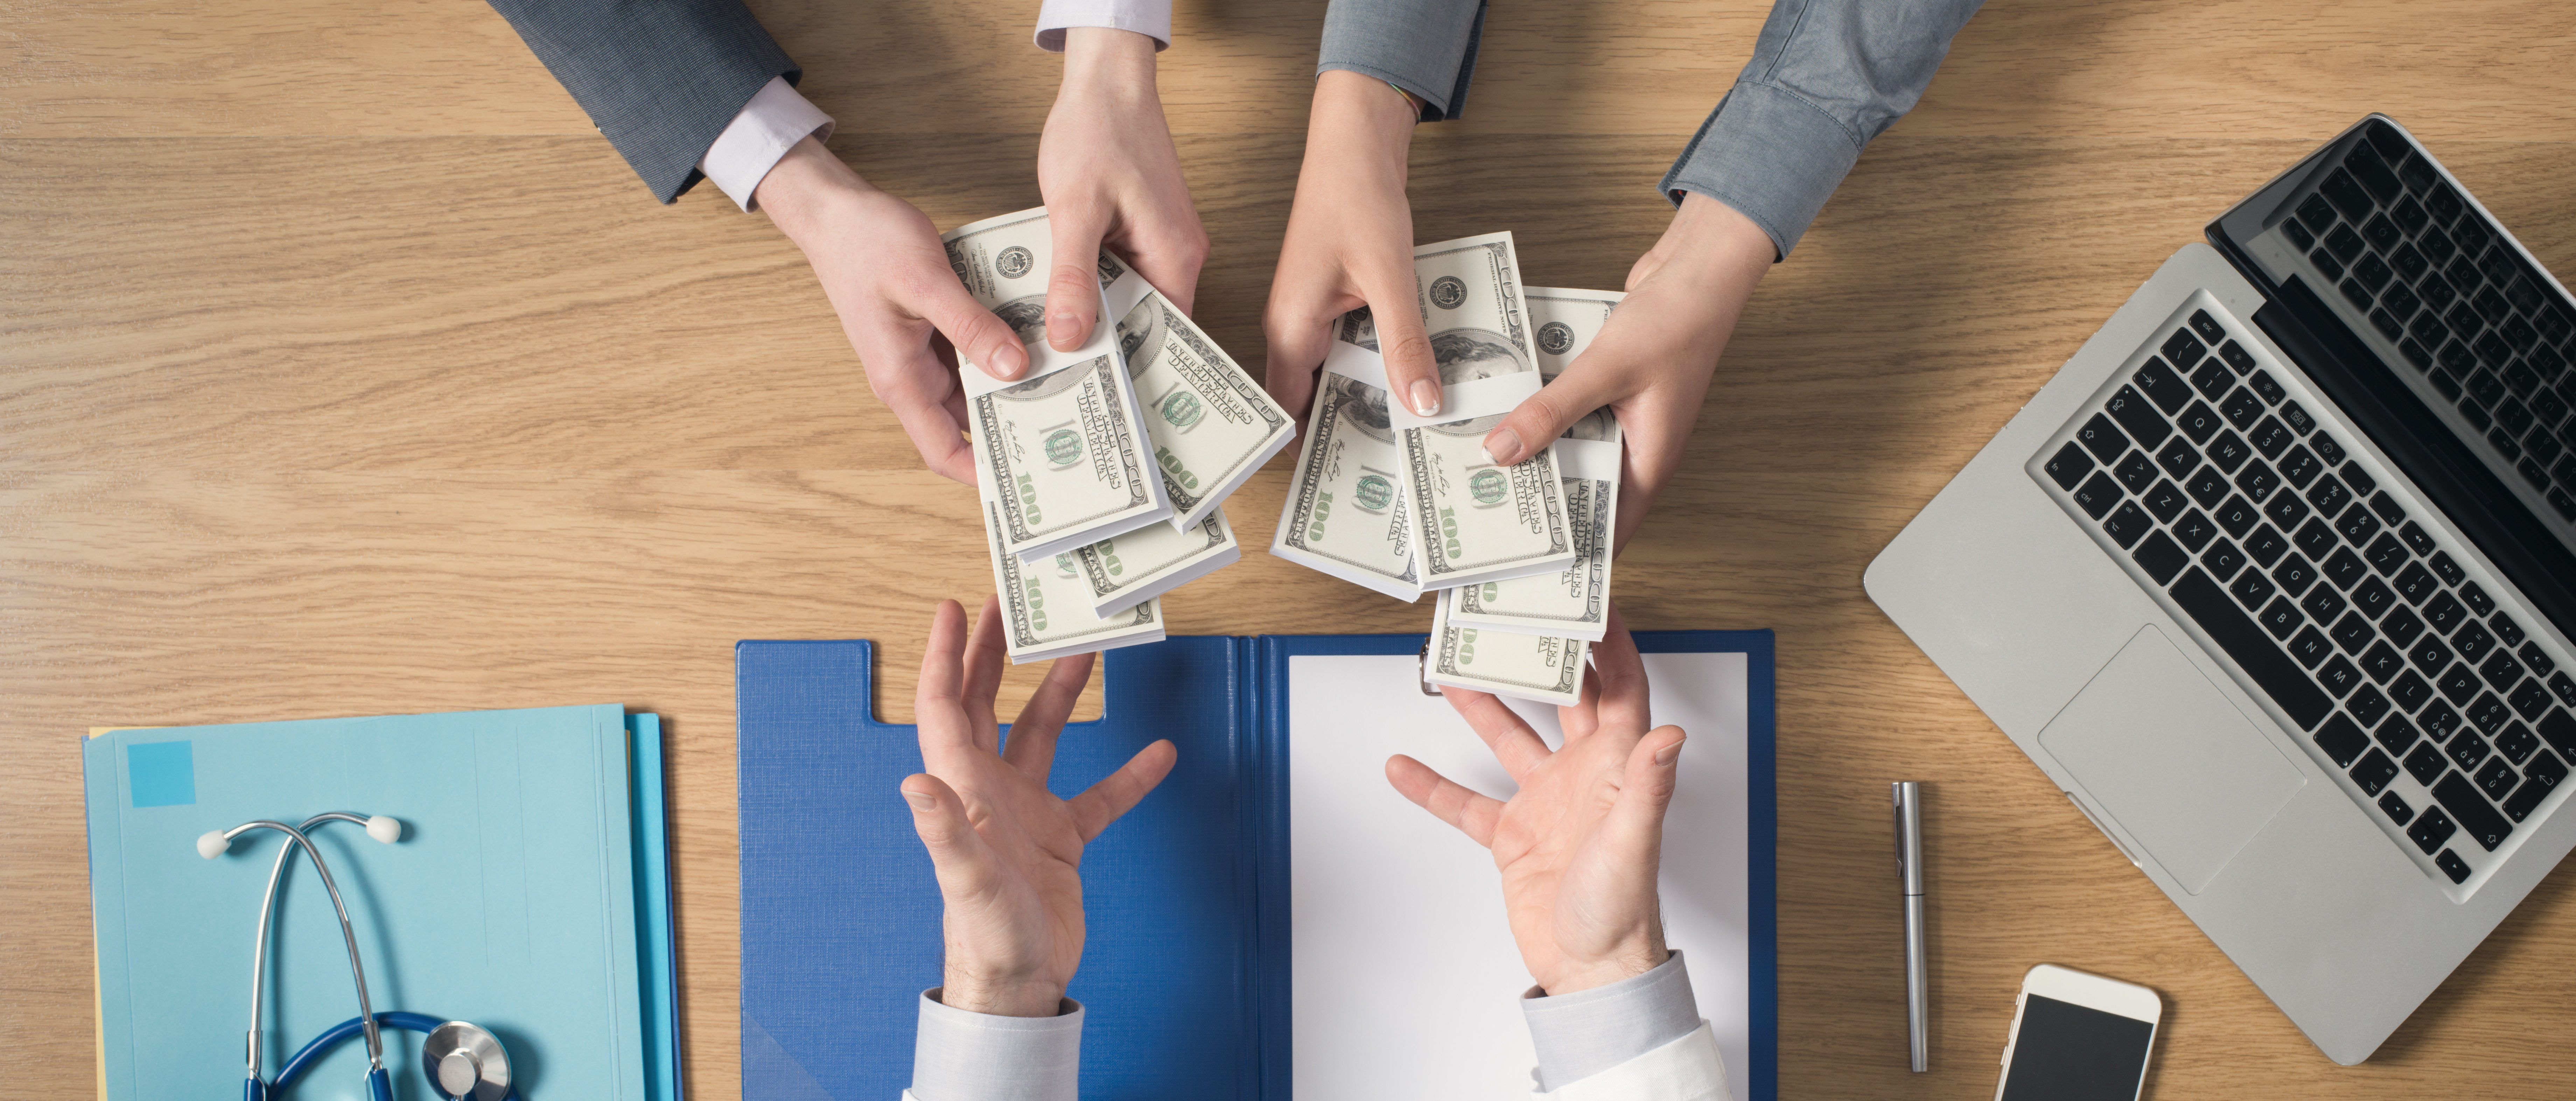 Money passes into a doctor's hands. Shutterstock image via Stokkete